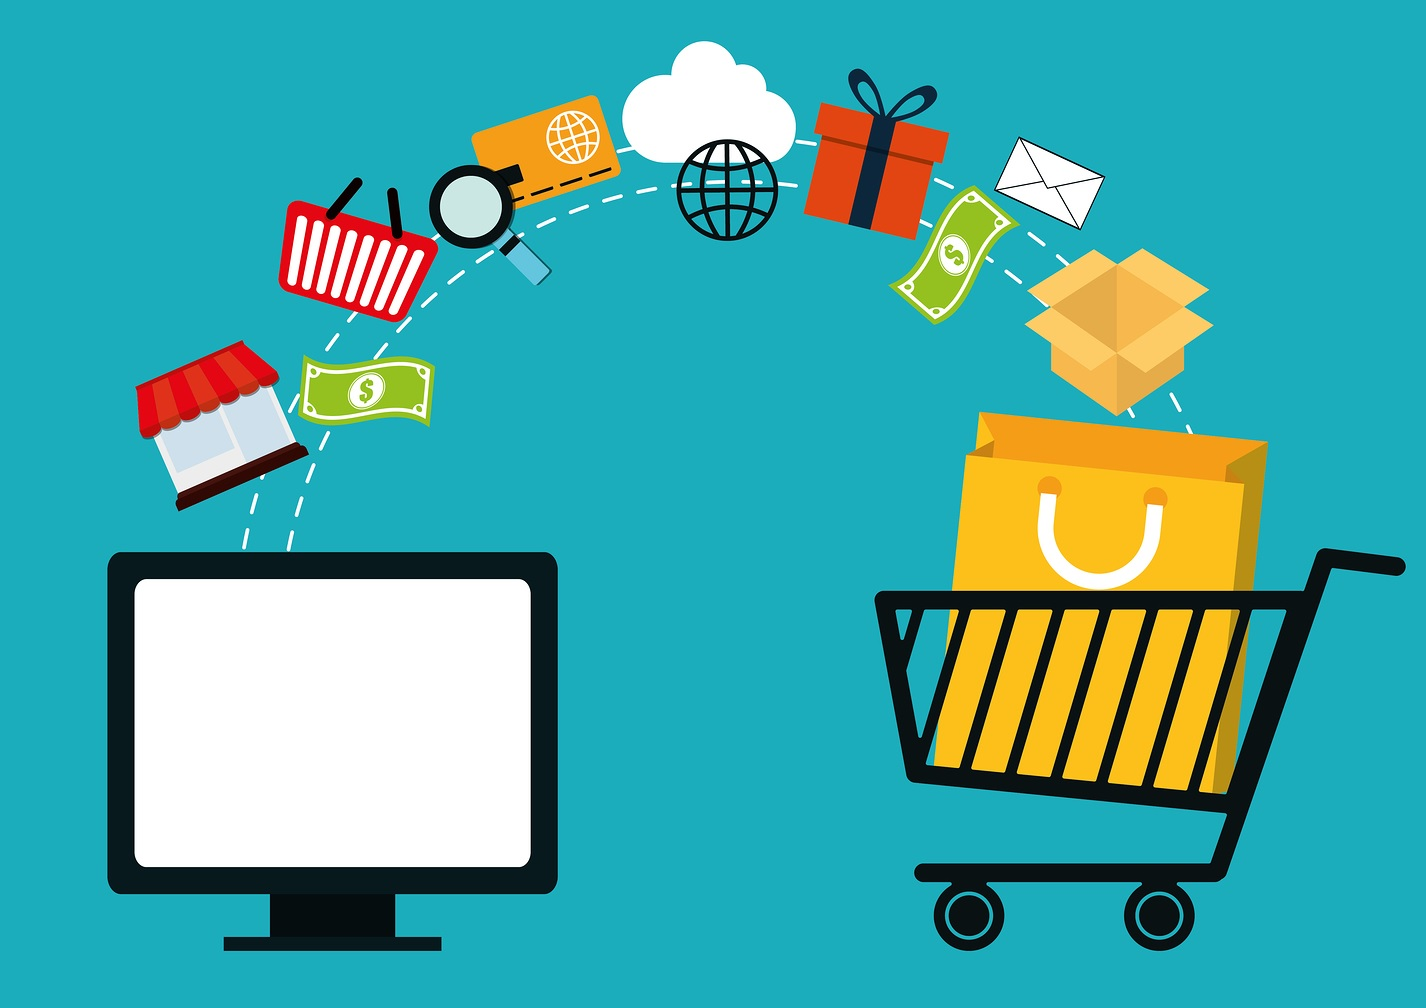 Is e-commerce coming to an end? New e-commerce How to achieve?